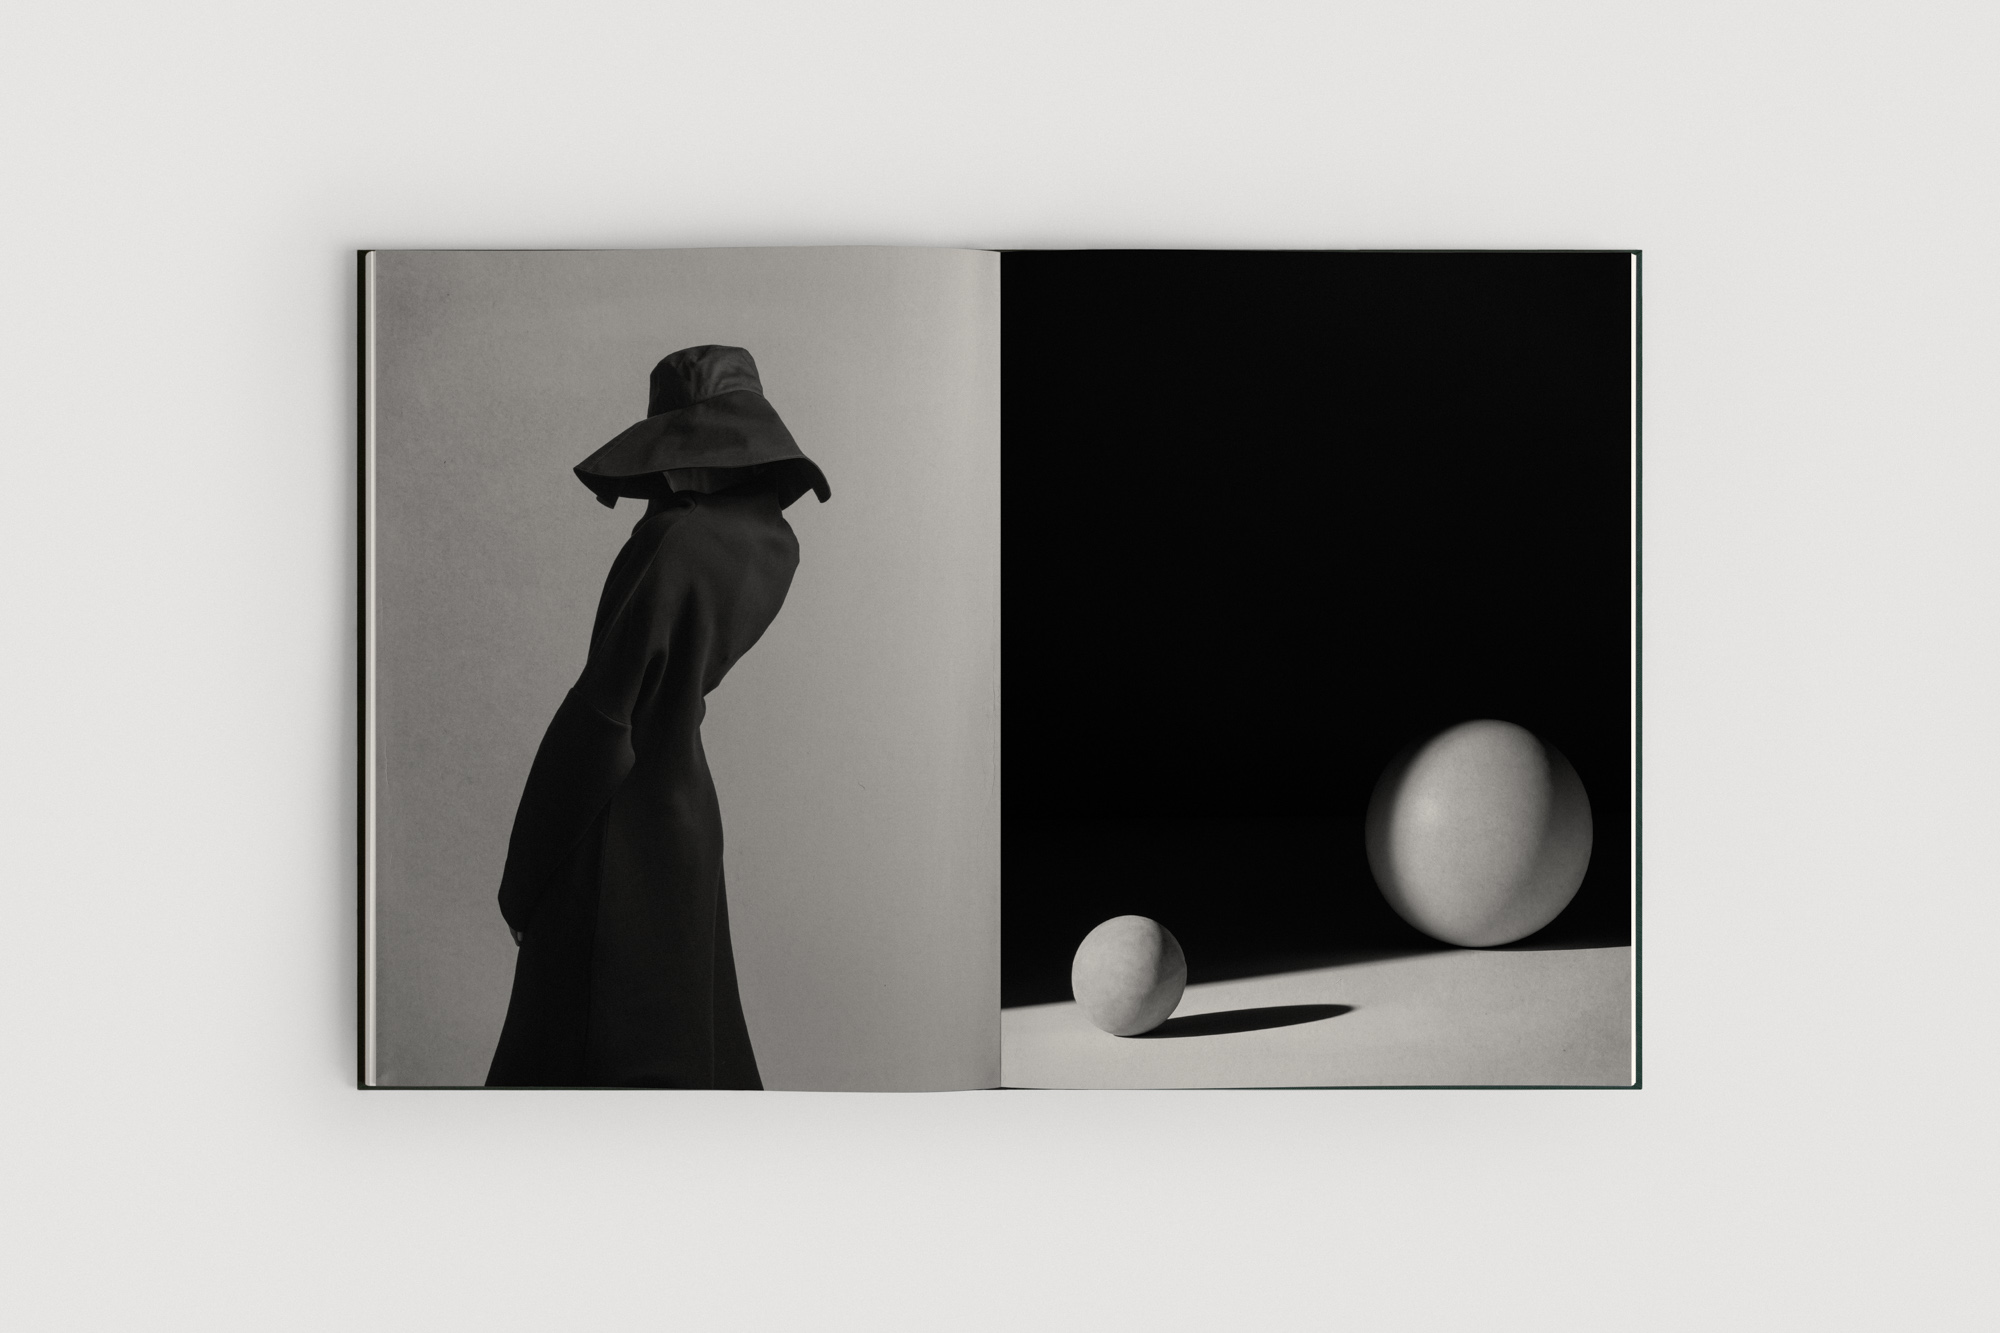 Jonas-Bjerre-Poulsen-The-Reinvention-of-Forms-Book-Packshots-Web-14